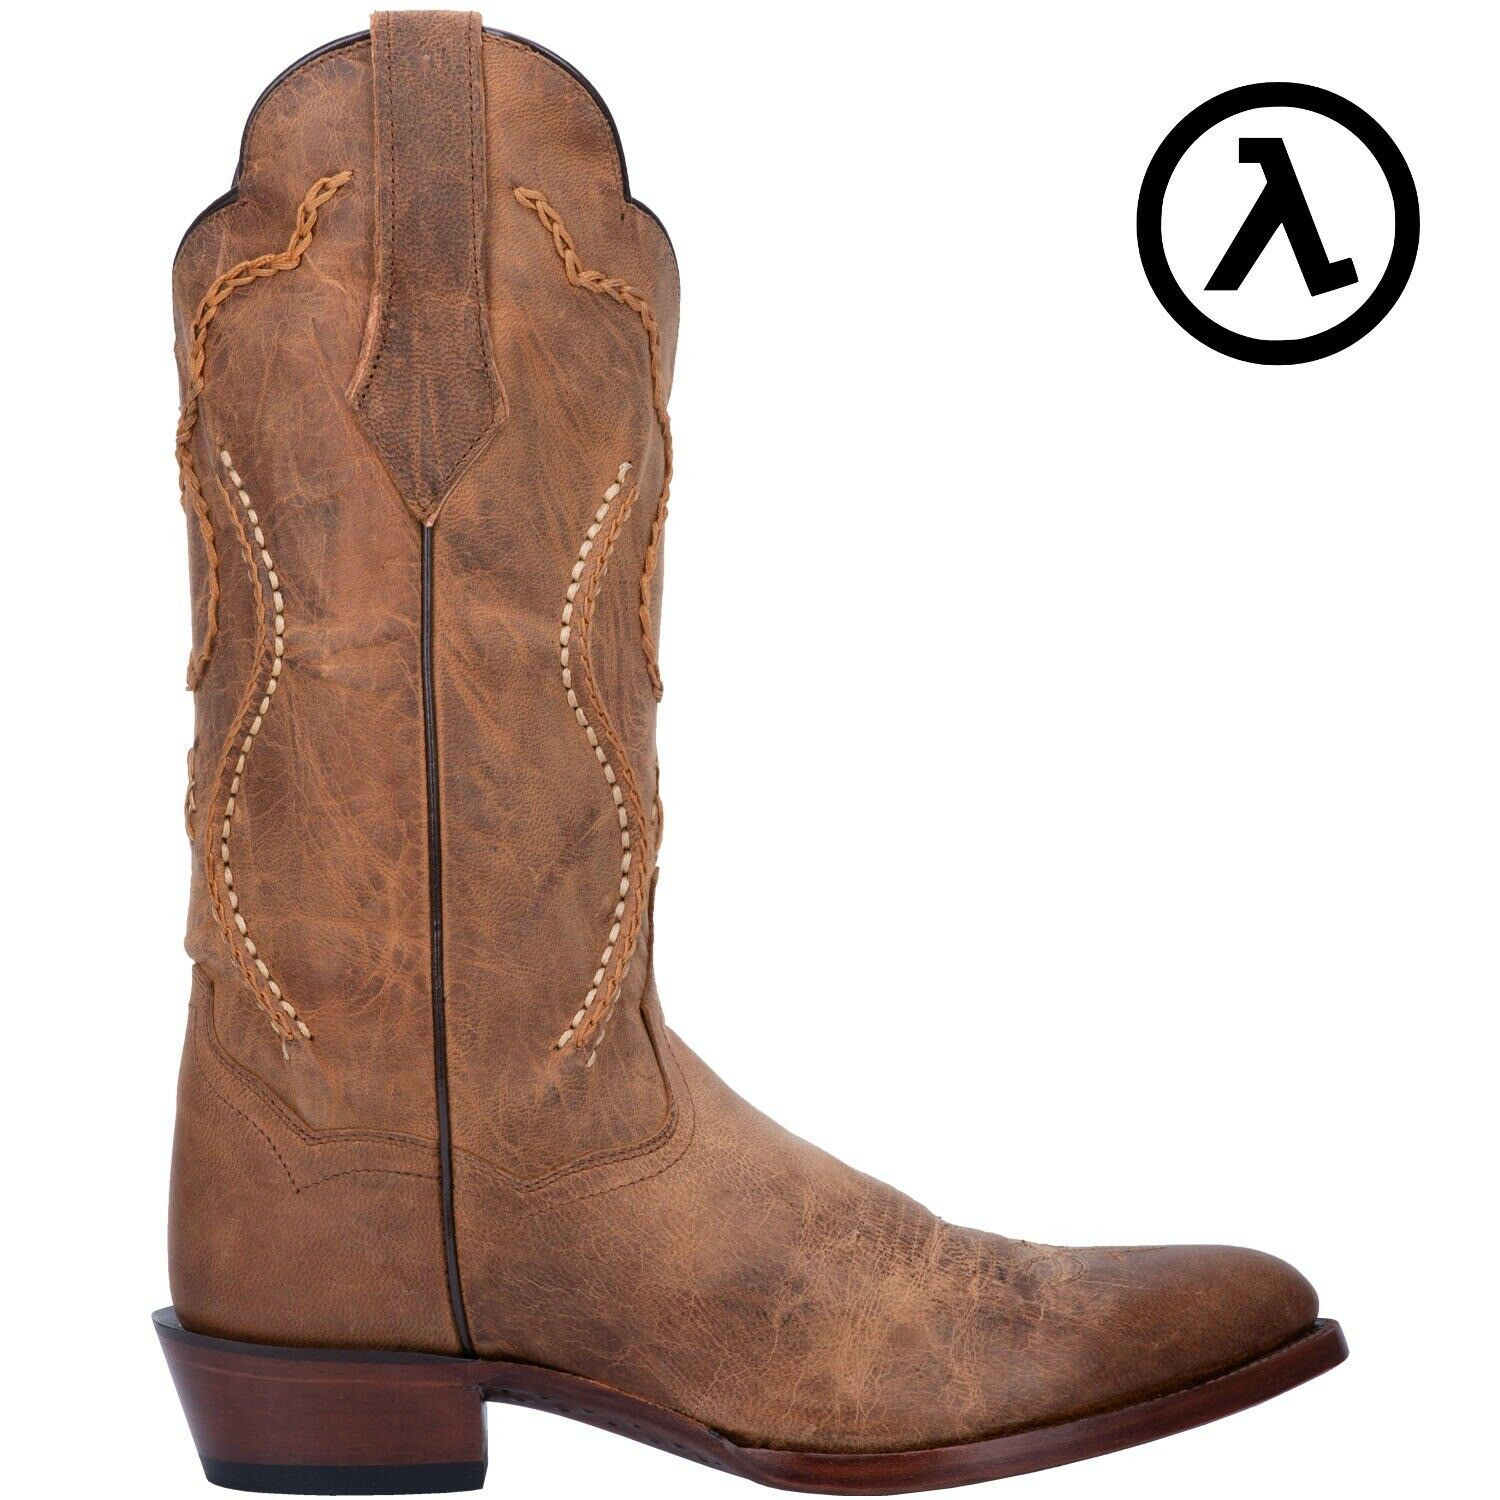 DAN POST ALBANY 13  WESTERN HANDMADE LEATHER MEN'S BOOTS DP26682  ALL SIZES